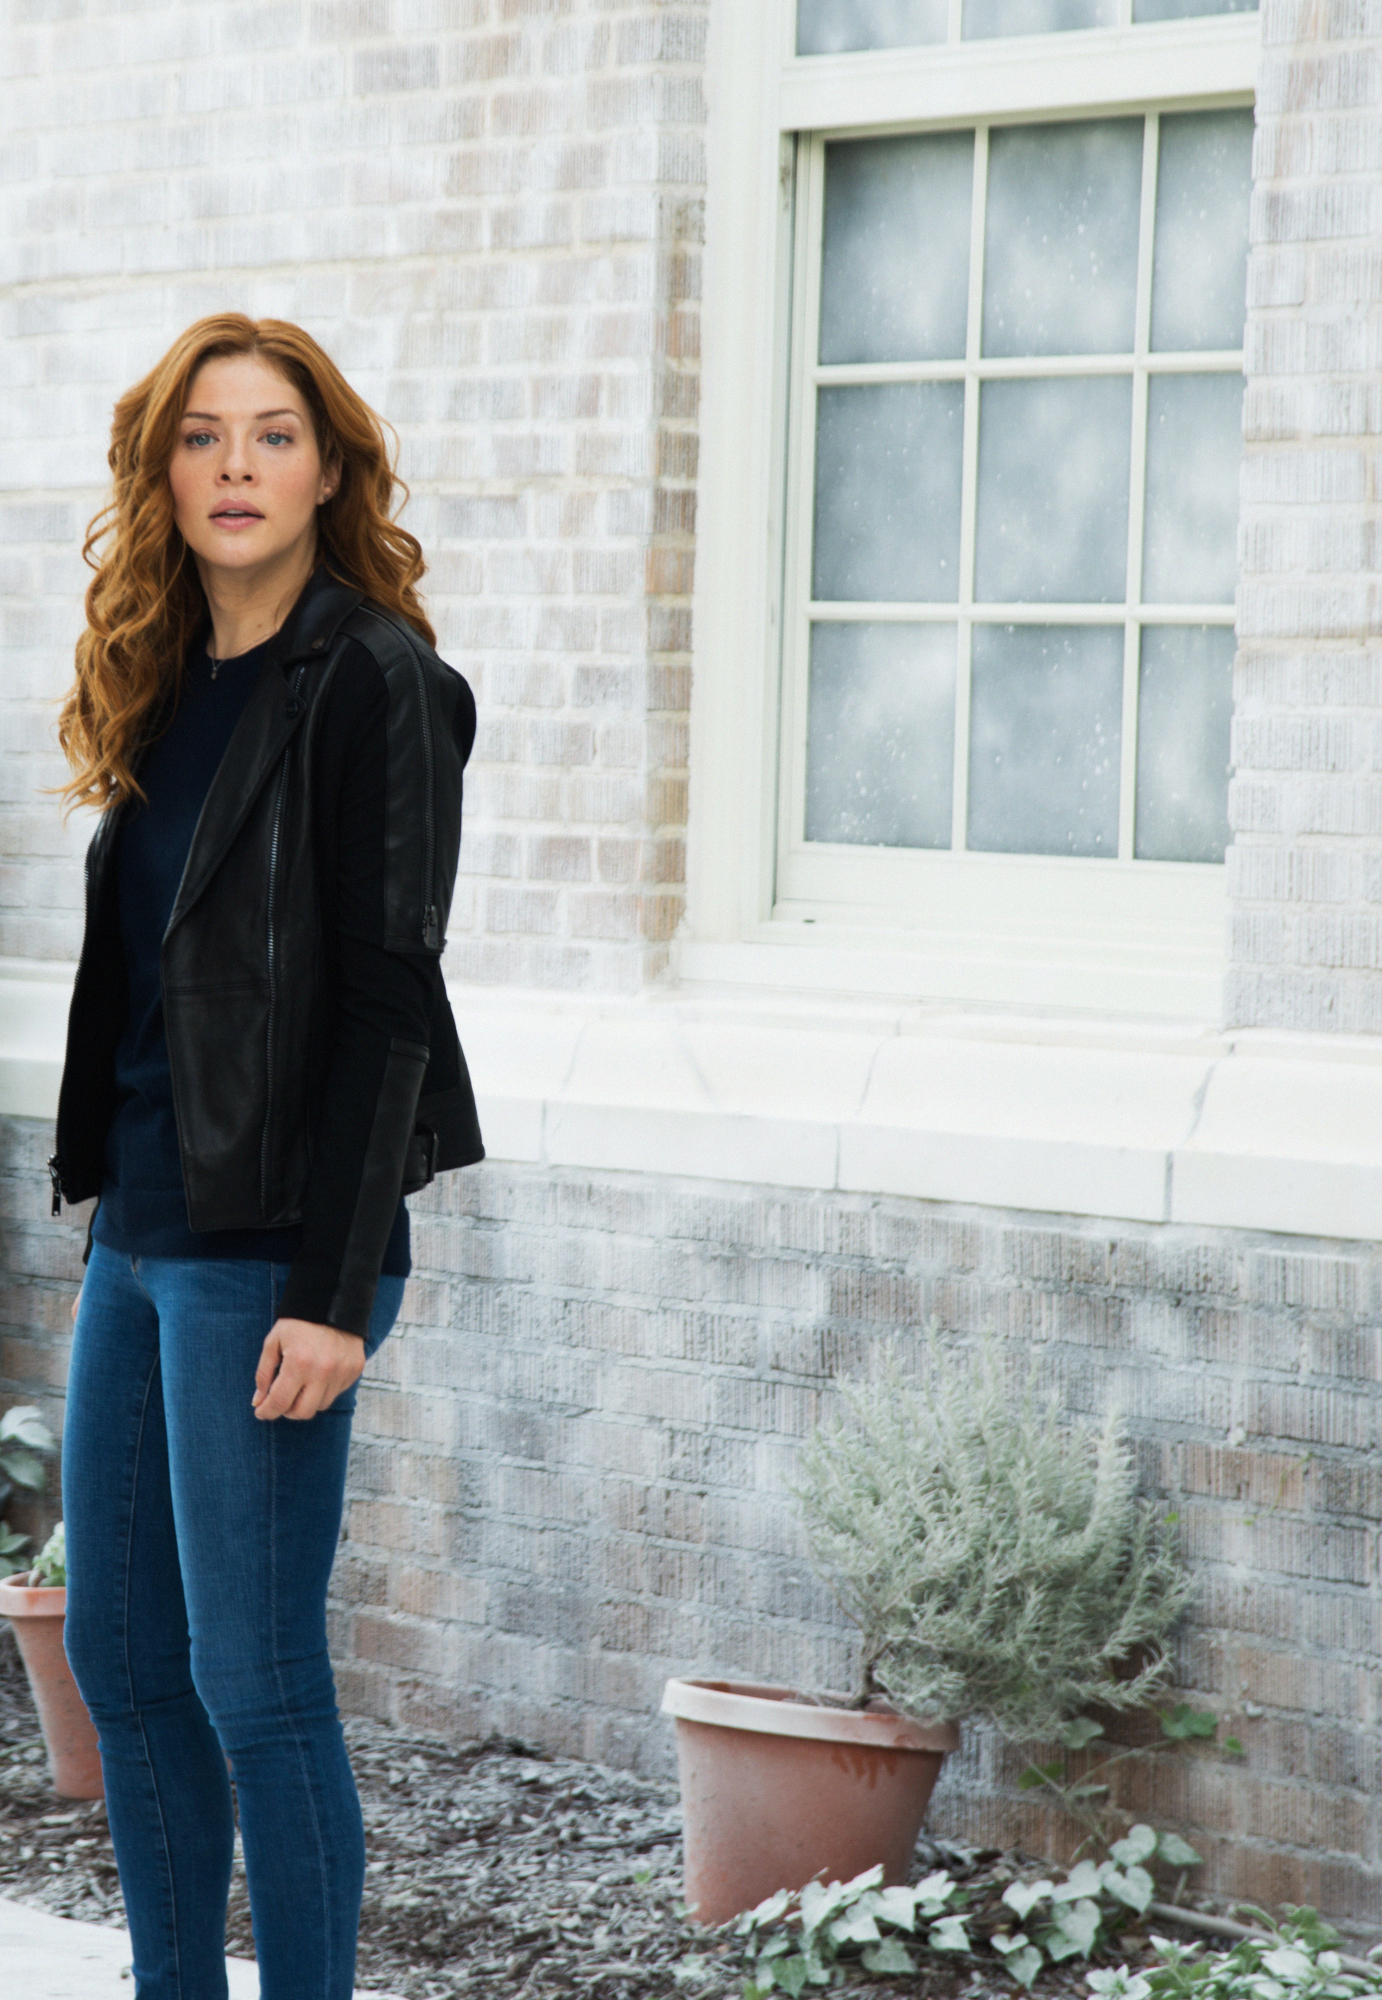 26. Rachelle Lefevre was given her first TV audition when a producer spotted her waitressing in a Montreal restaurant.